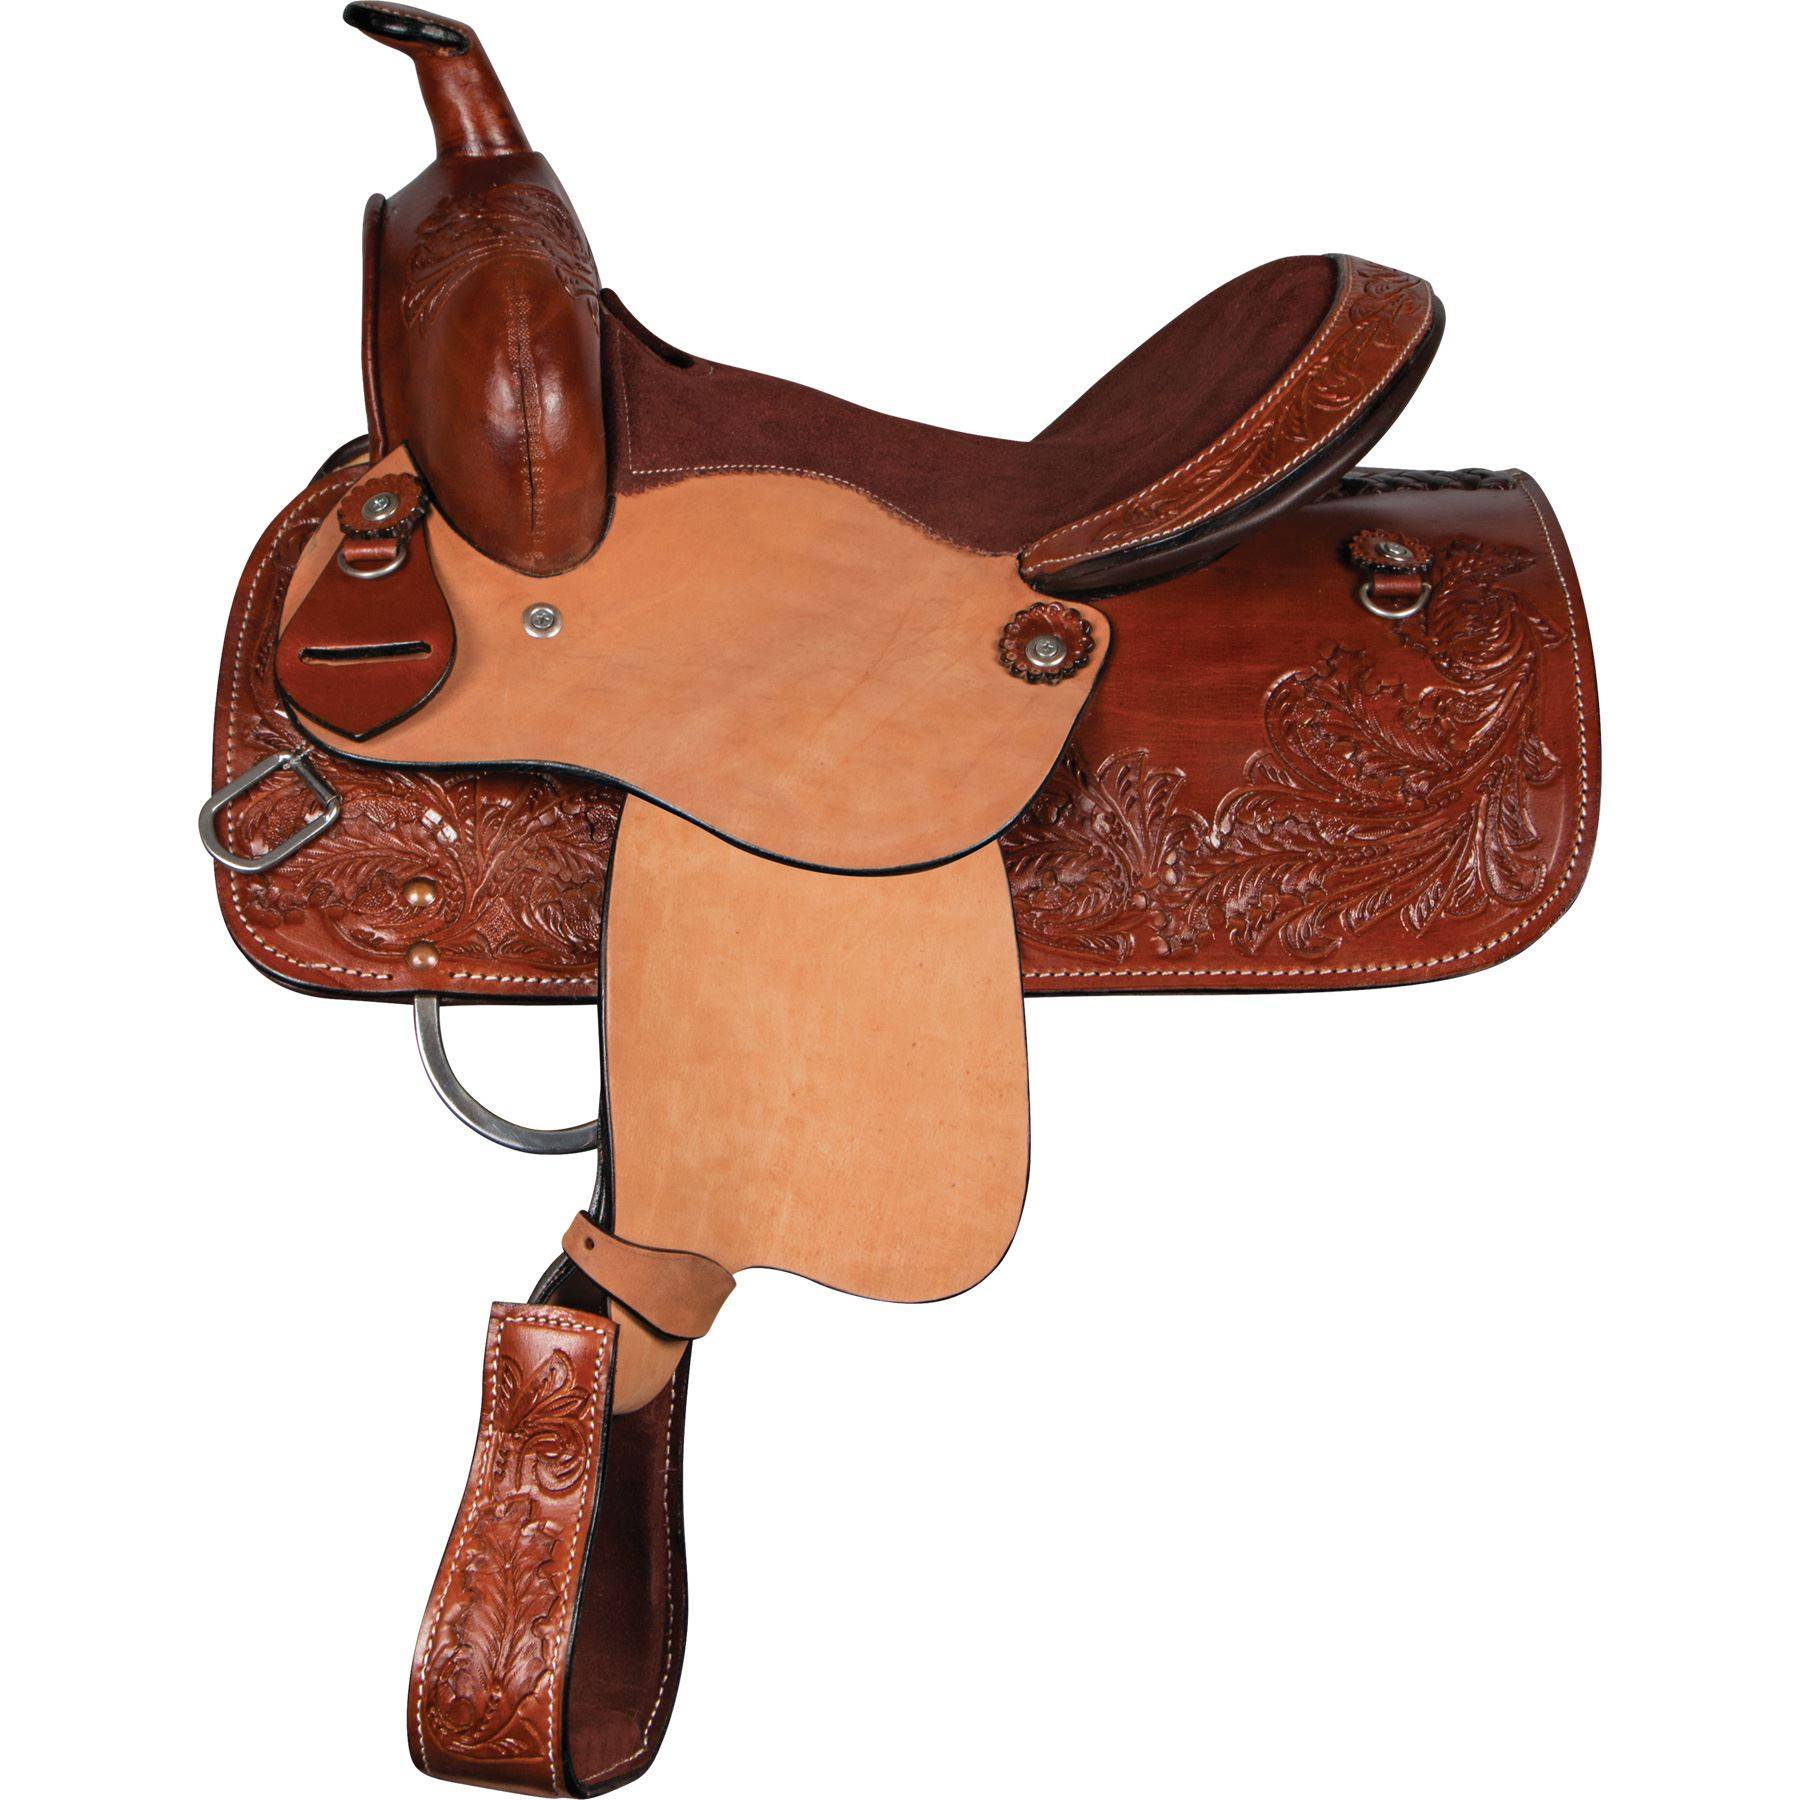 Double S Lil' Buckaroo Youth Saddle